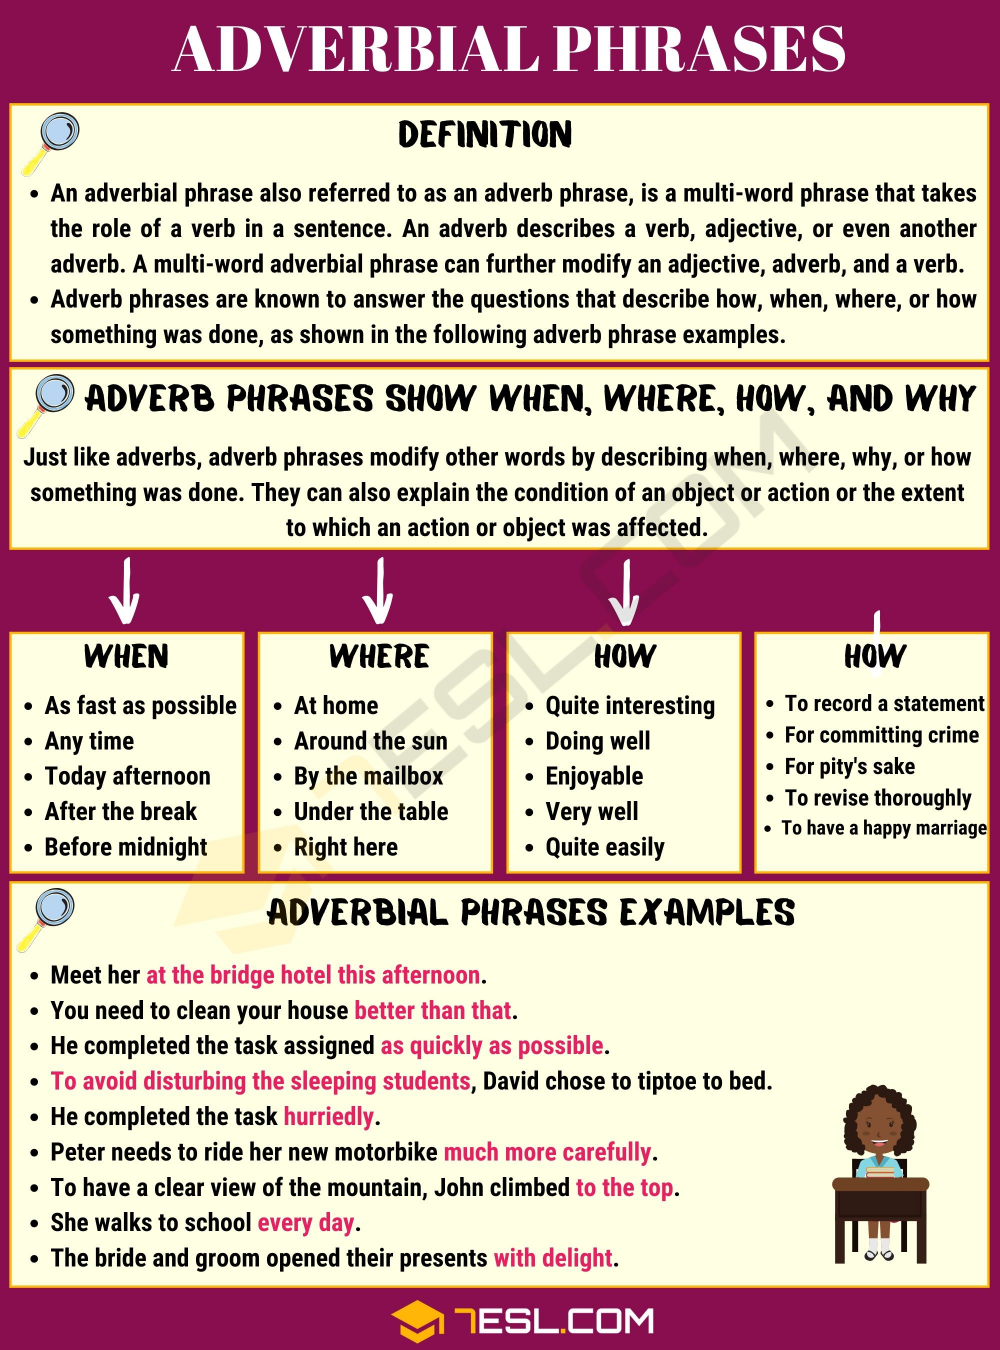 Adverbial Phrase Adverb Phrase Definition Usage And Examples 7esl Adverbial Phrases Prepositional Phrases Adverbs [ 1350 x 1000 Pixel ]